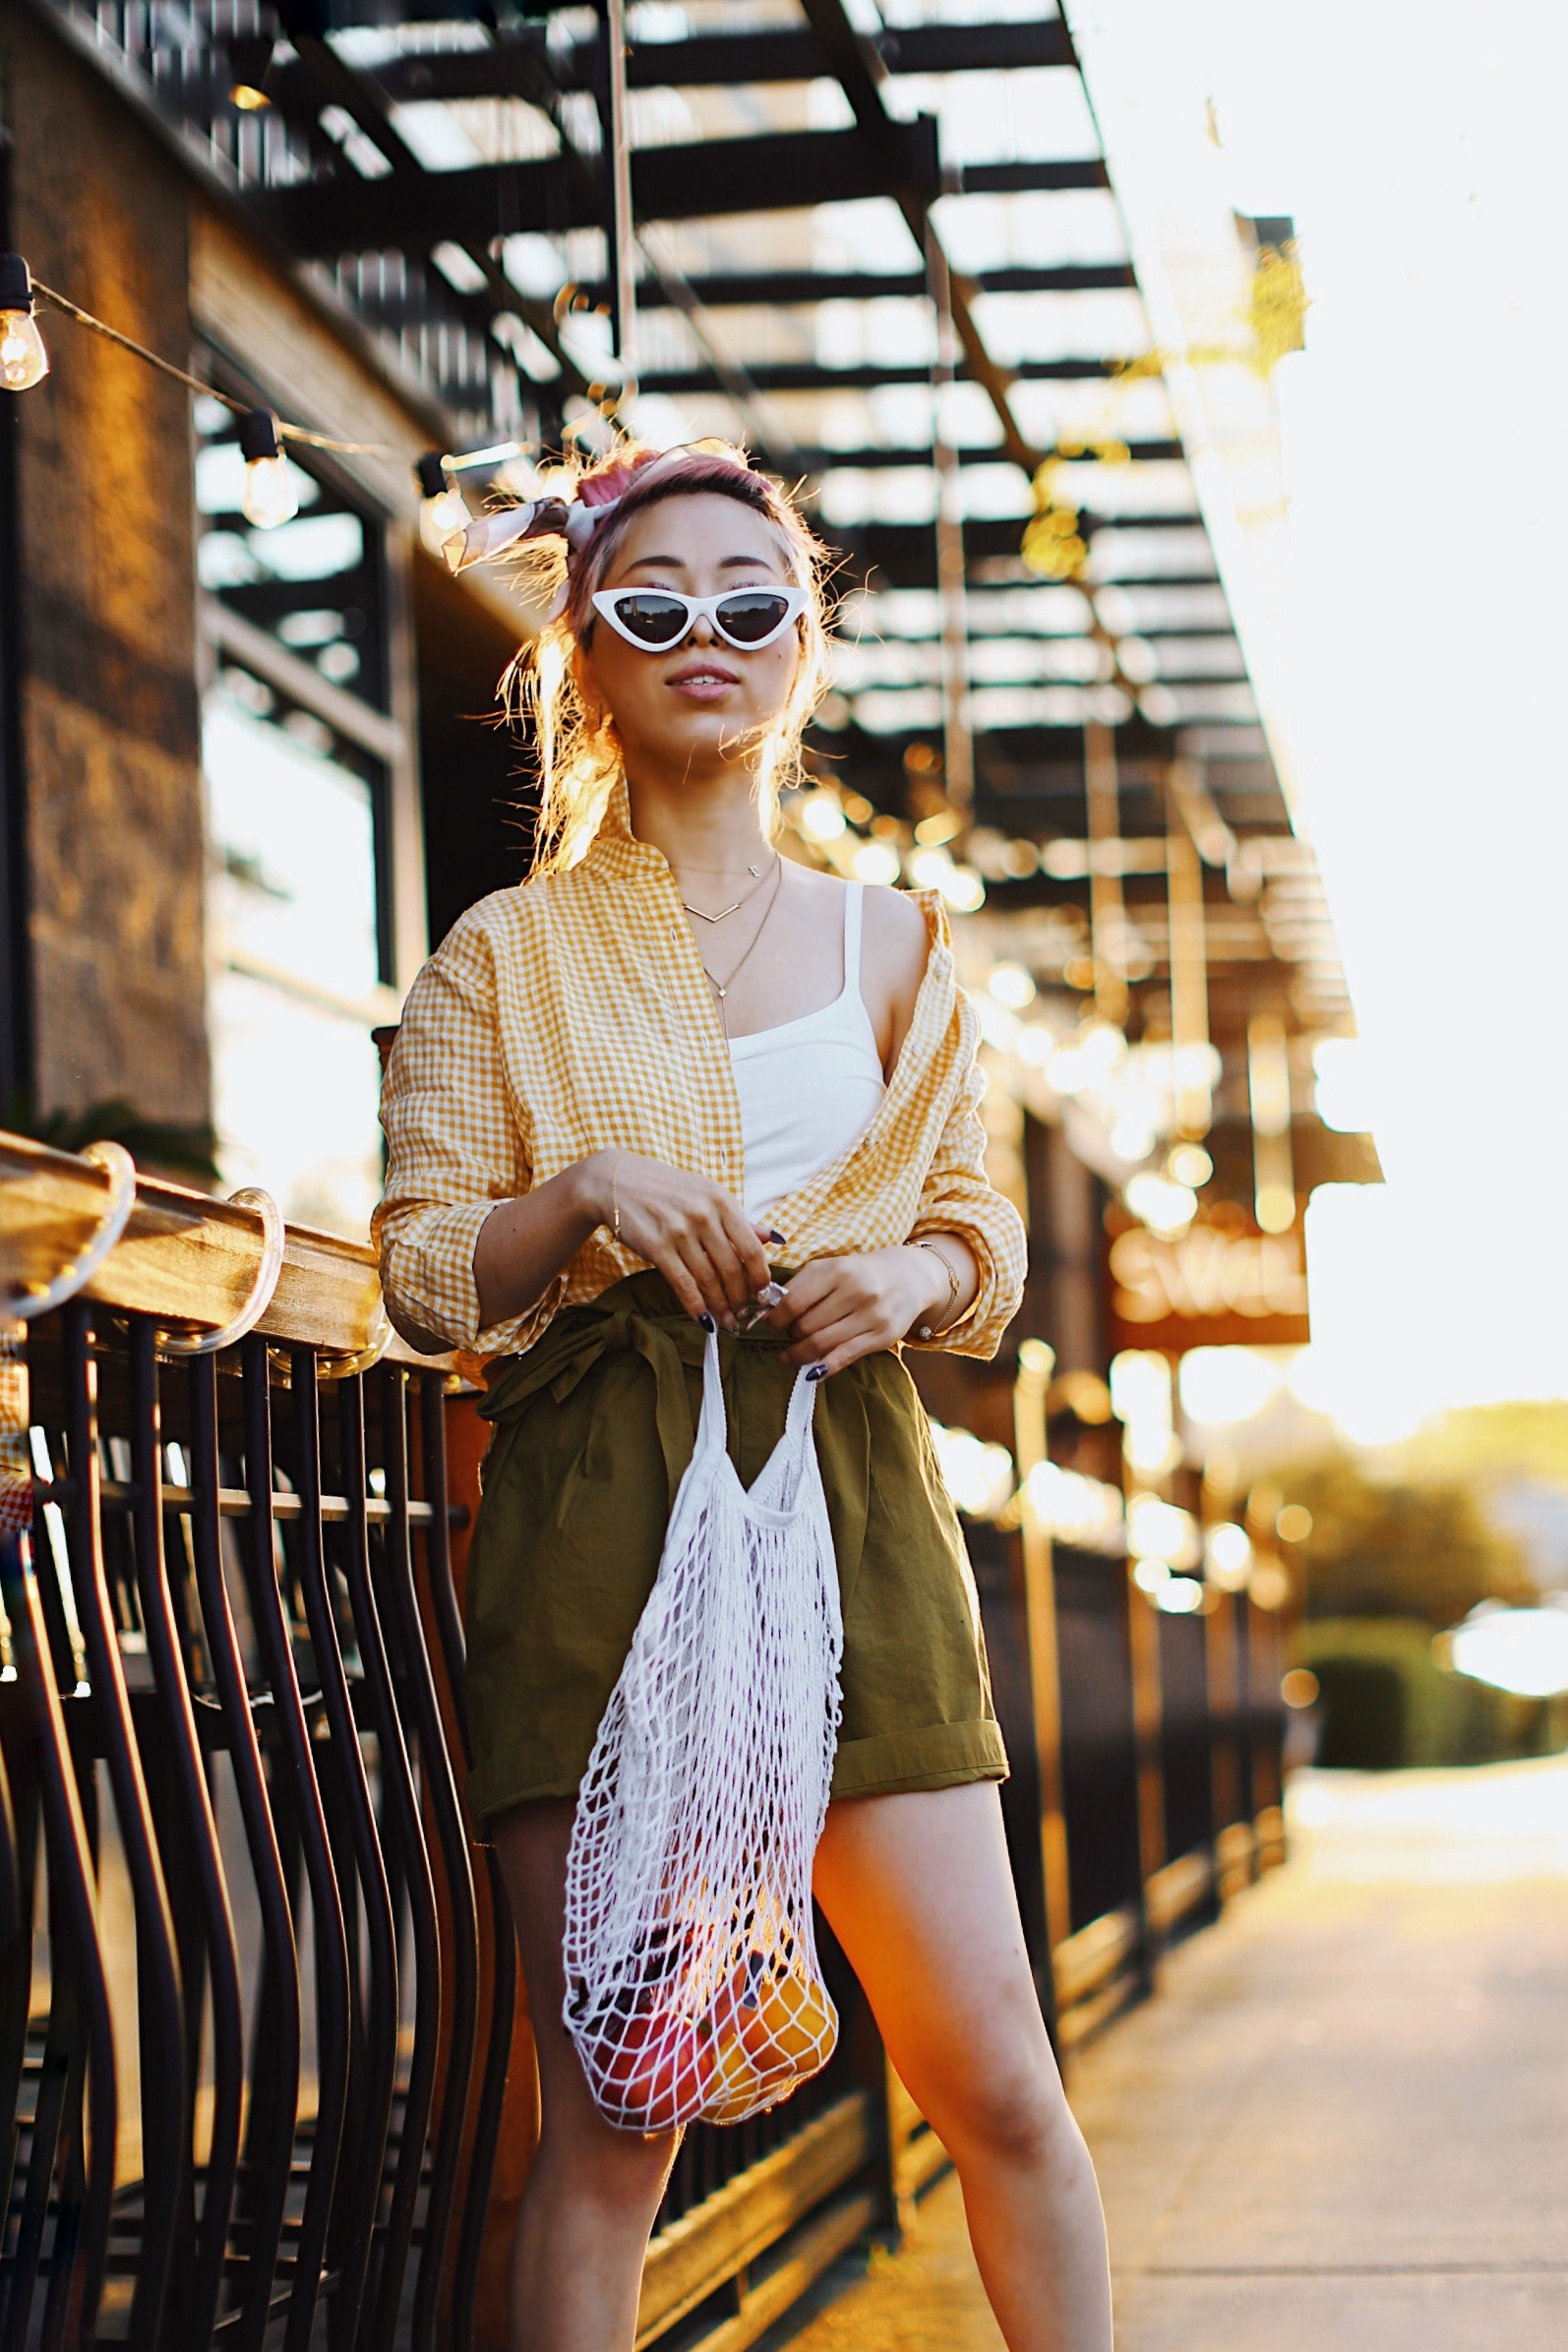 Uniqlo yellow Linen gingham shirt-Uniqlo olive paperbag shorts-Uniqlo Airism bratop-White Cat eye sunglasses ZERO UV- Pipe + Row White net bag-Vintage scarf bun hairstyle-ALDO Embroidered Nude mules-Aika's Love Closet-seattle fashion style blogger-Japanese-pink hair-smiling-spring fashion 8